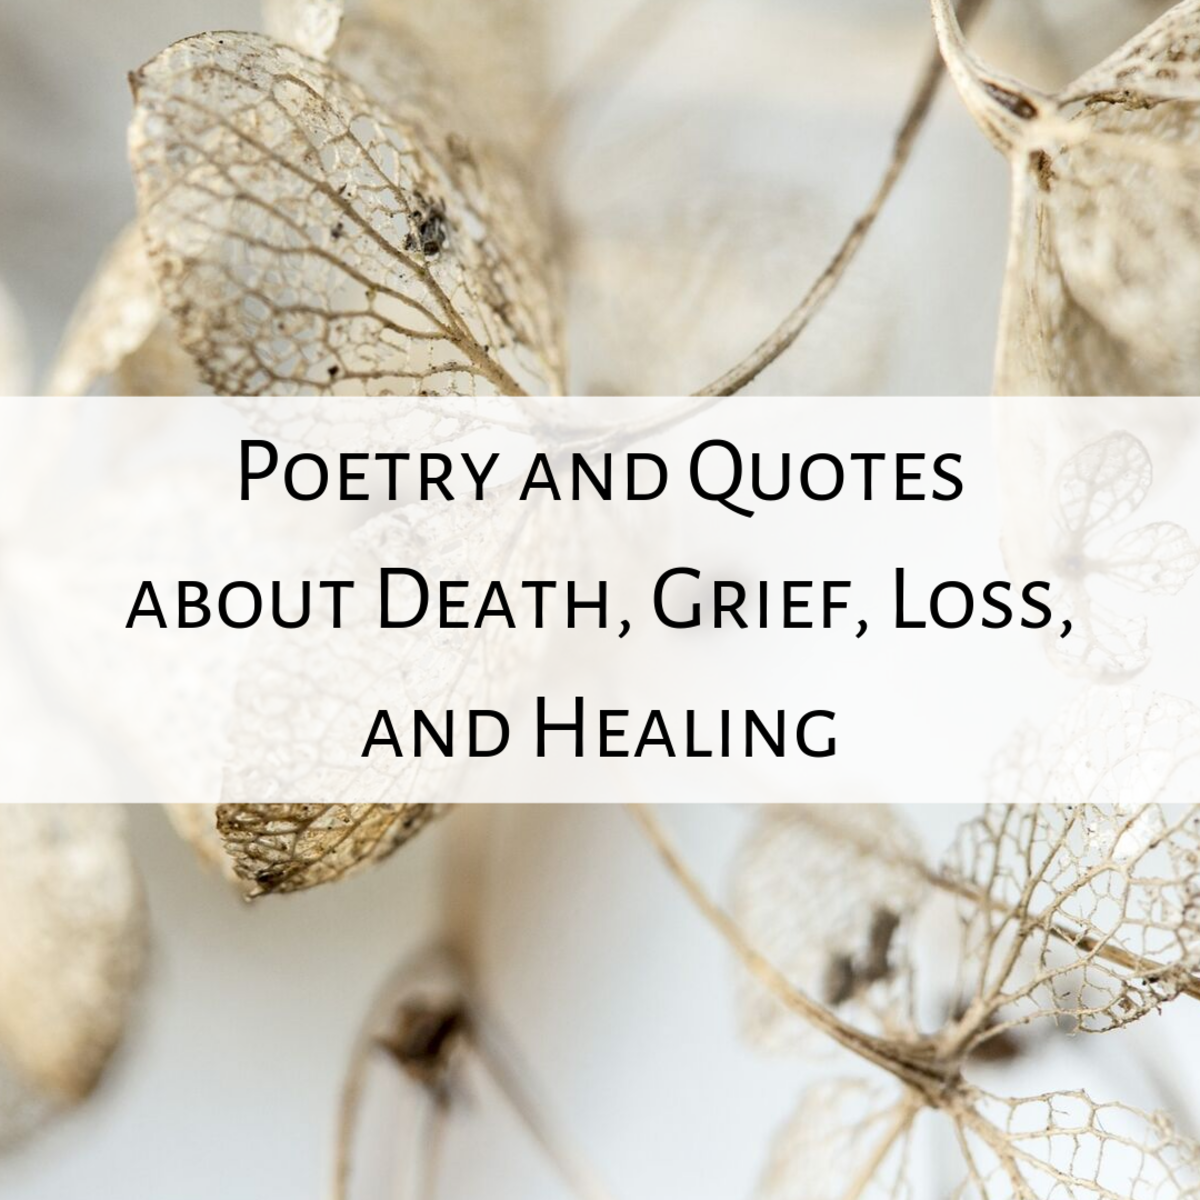 Read some comforting words for those that are left behind after a death or loss.